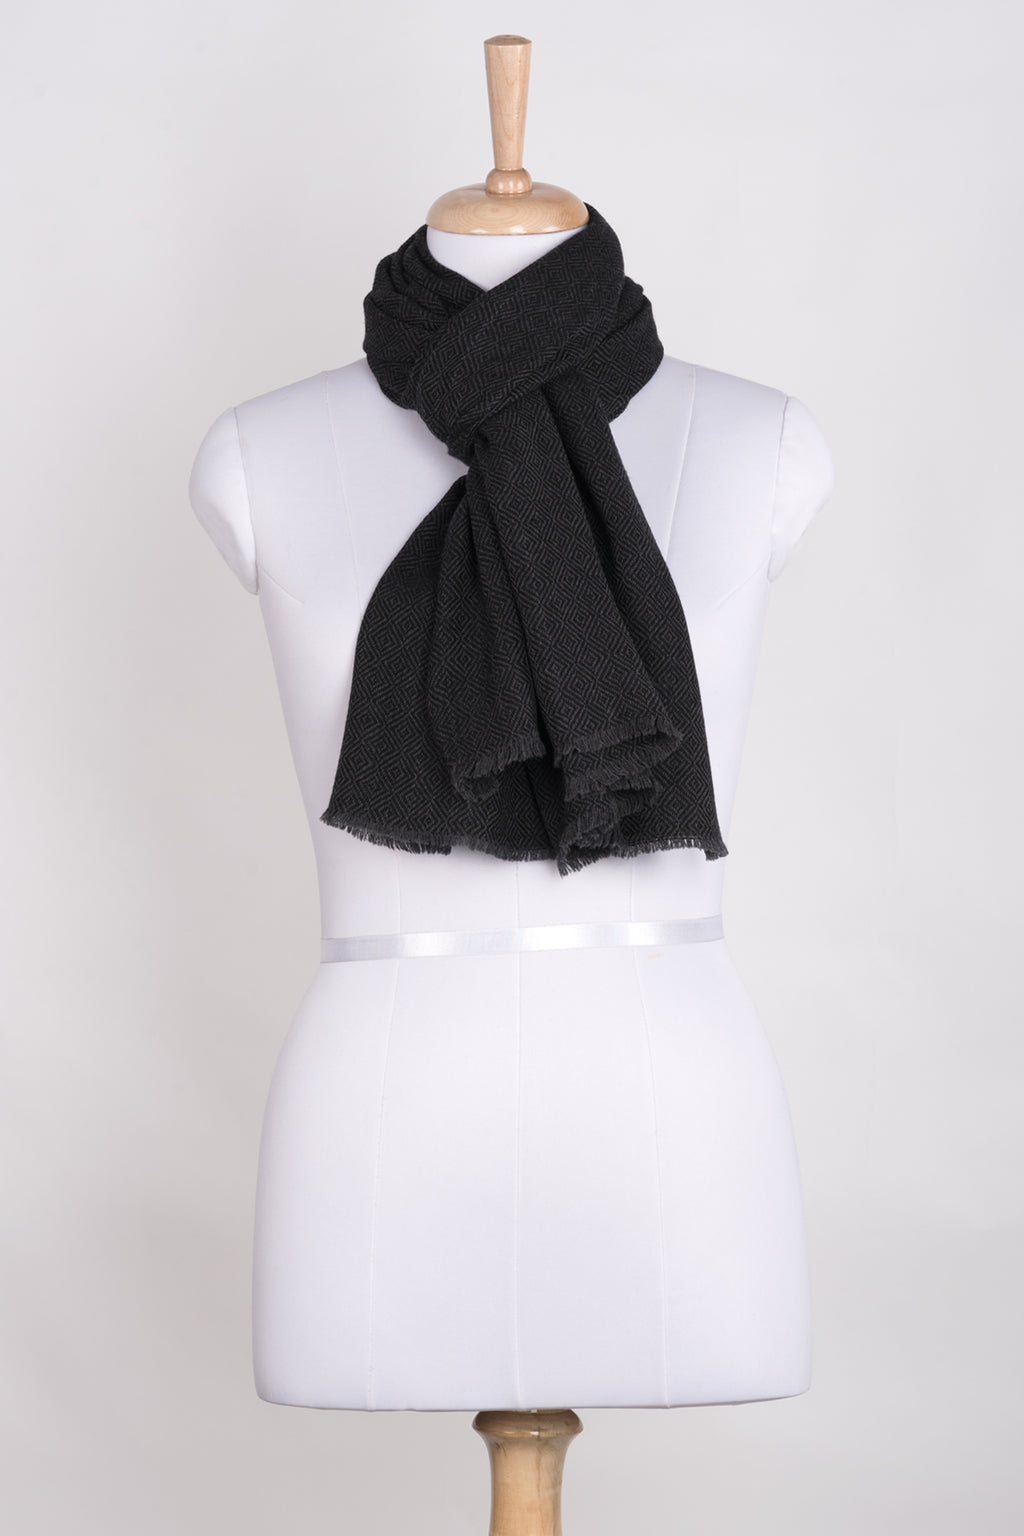 Diamond Weave Two Tone Woollen Scarf - Charcoal